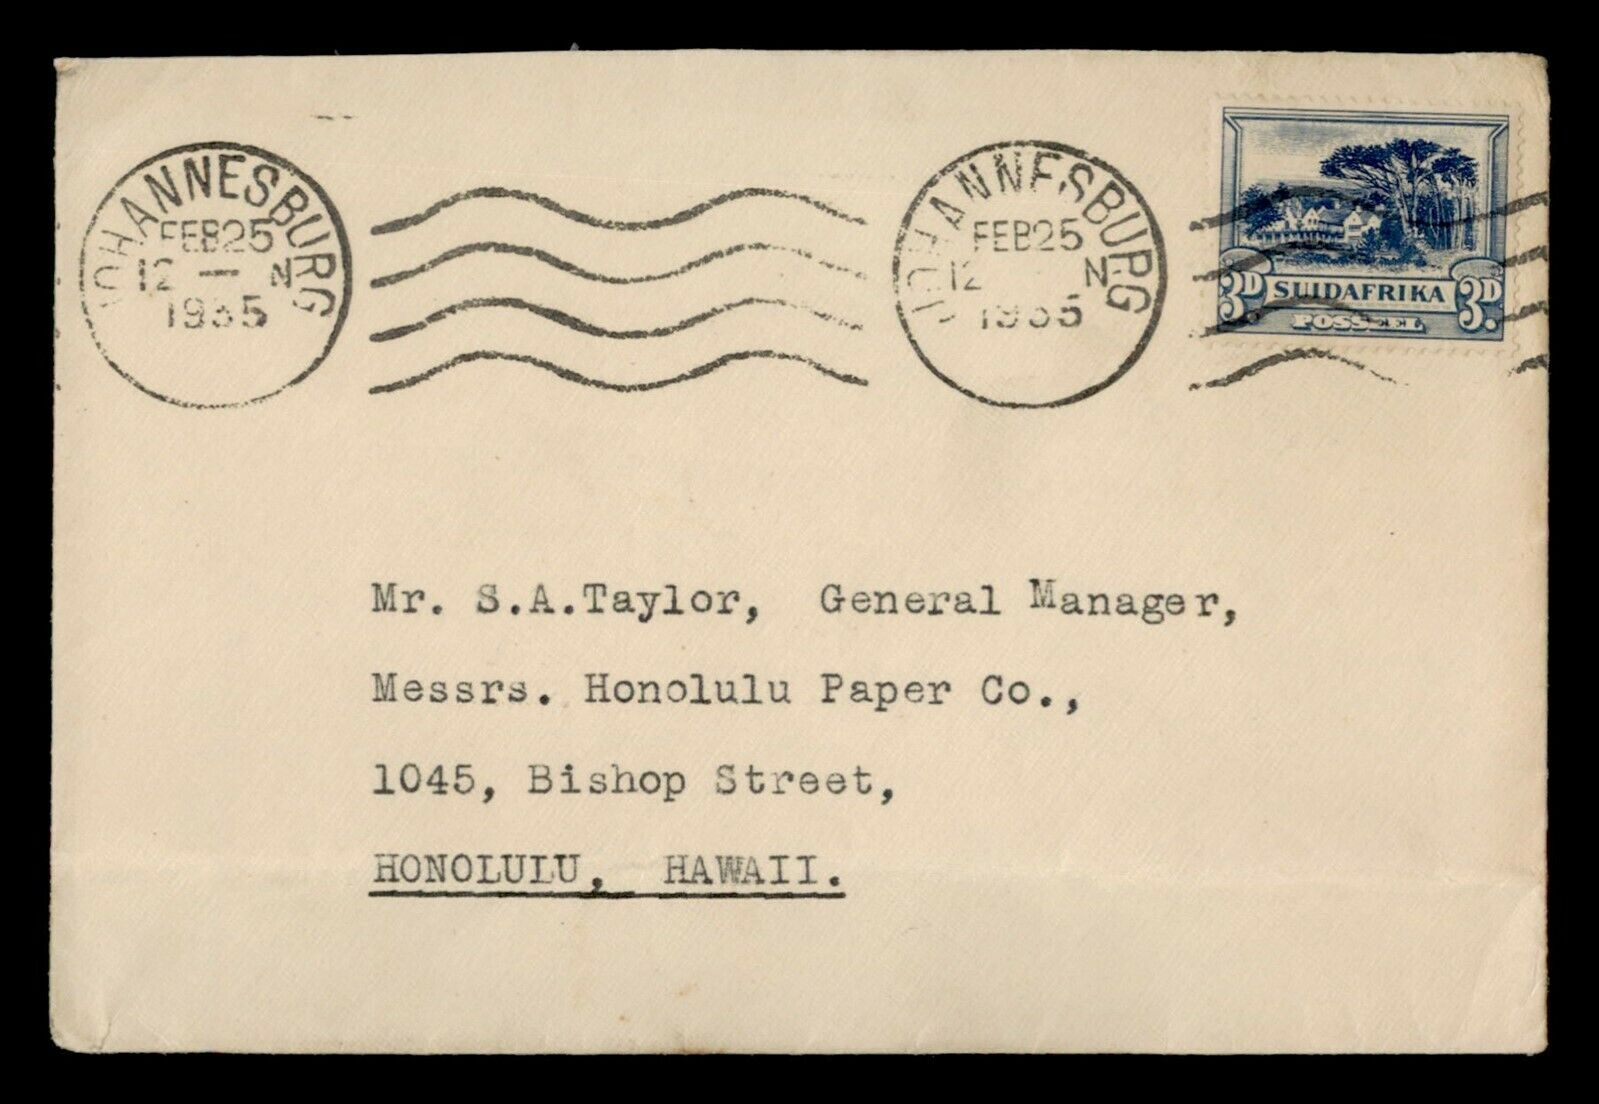 DR WHO 1935 SOUTH AFRICA JOHANNESBURG TO USA F81337 - $0.50